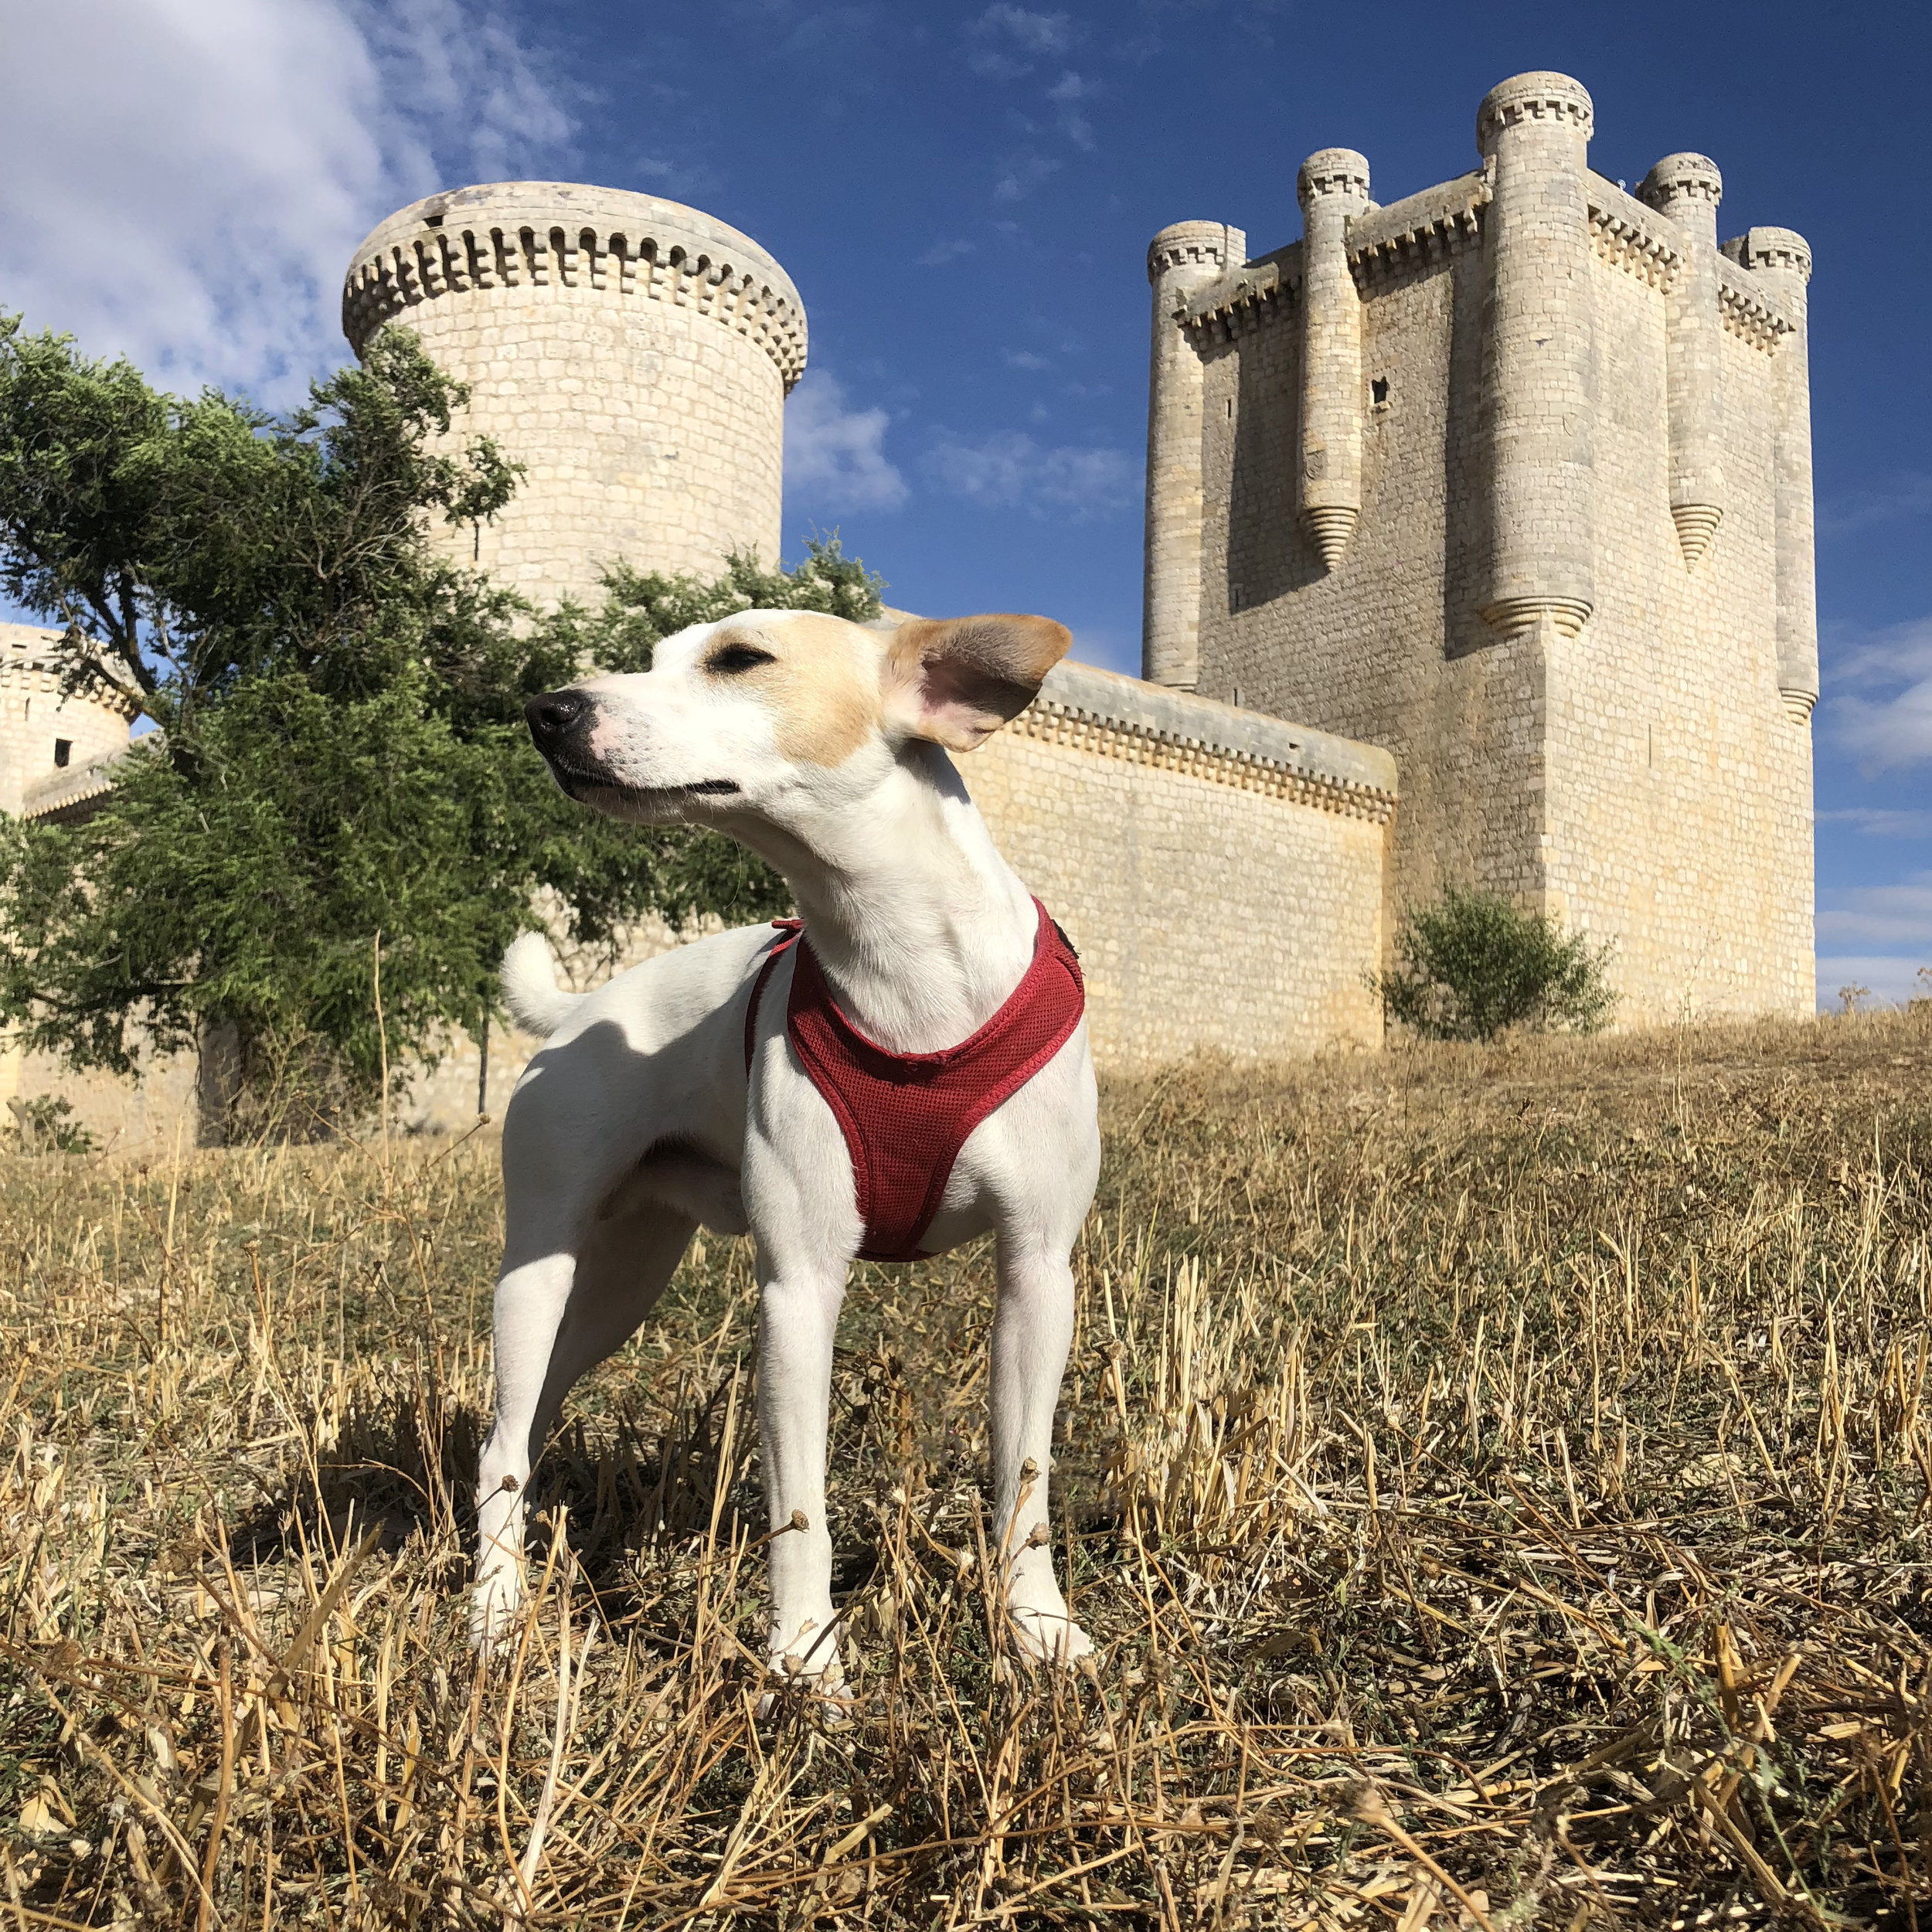 At the Castle of Torrelobatón.